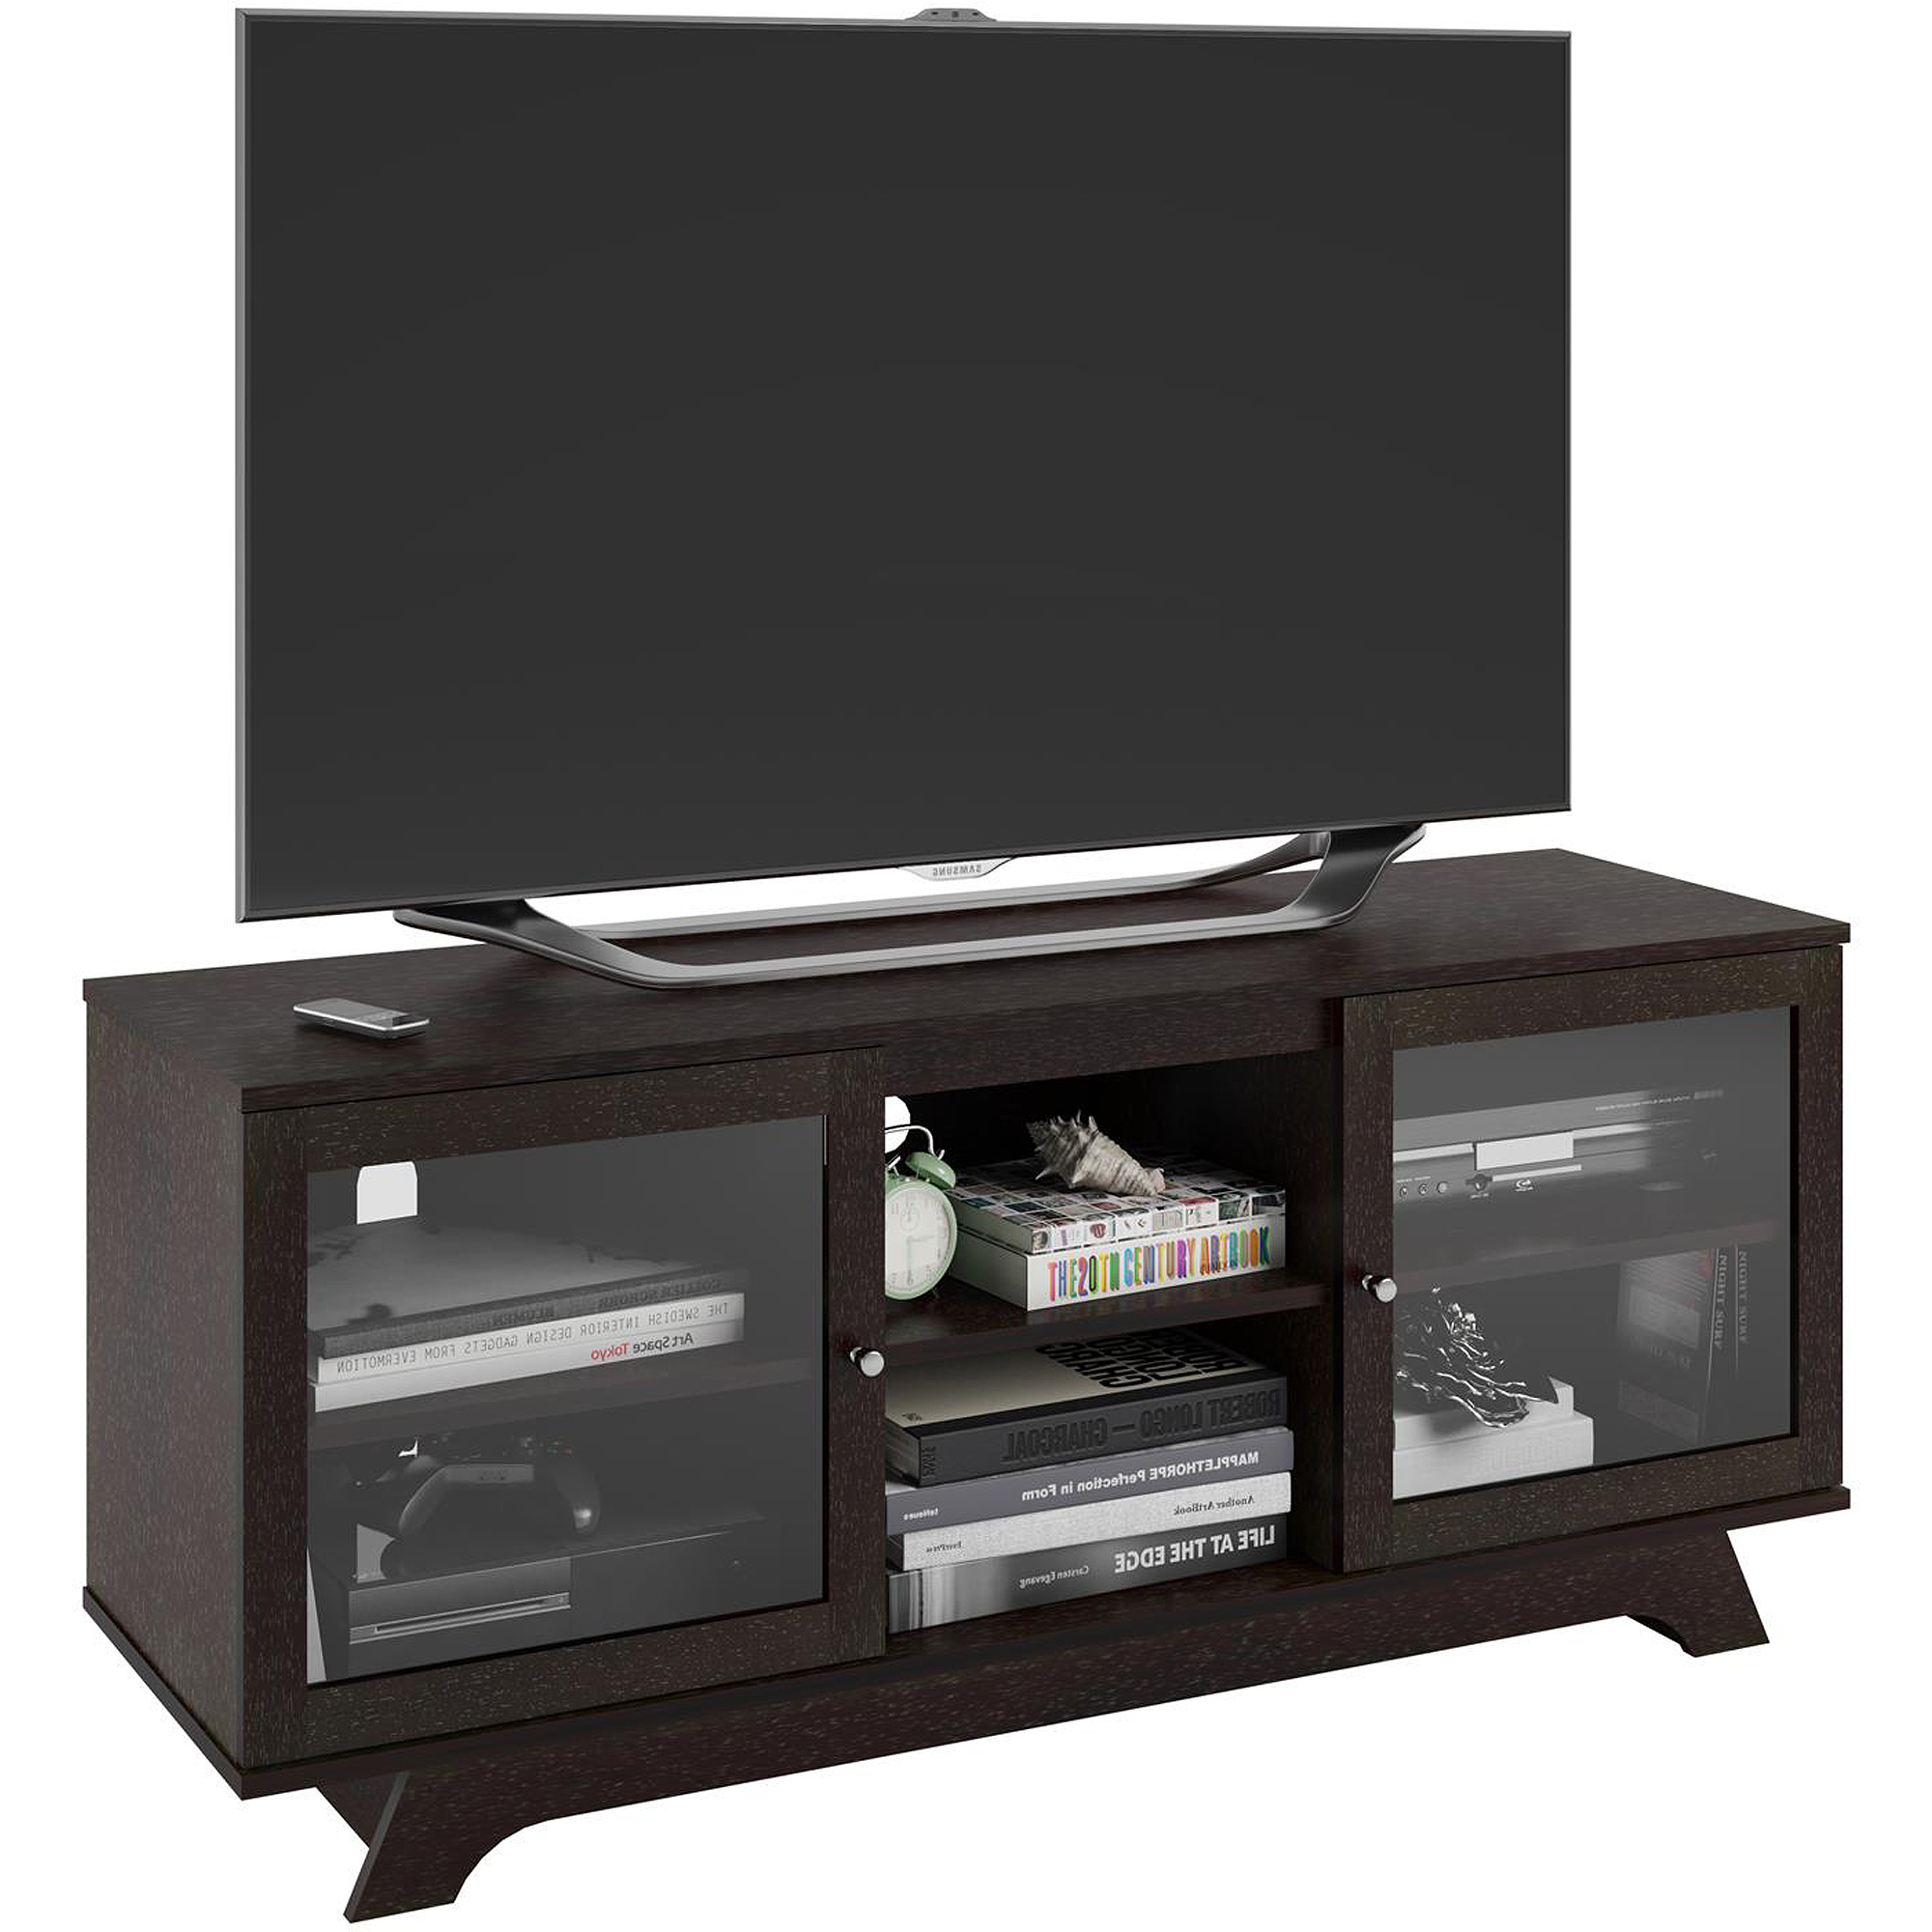 "Modern Wooden Tv Stands With Regard To Most Popular Ameriwood Home Englewood Tv Stand For Tvs Up To 55"", Espresso (View 11 of 20)"